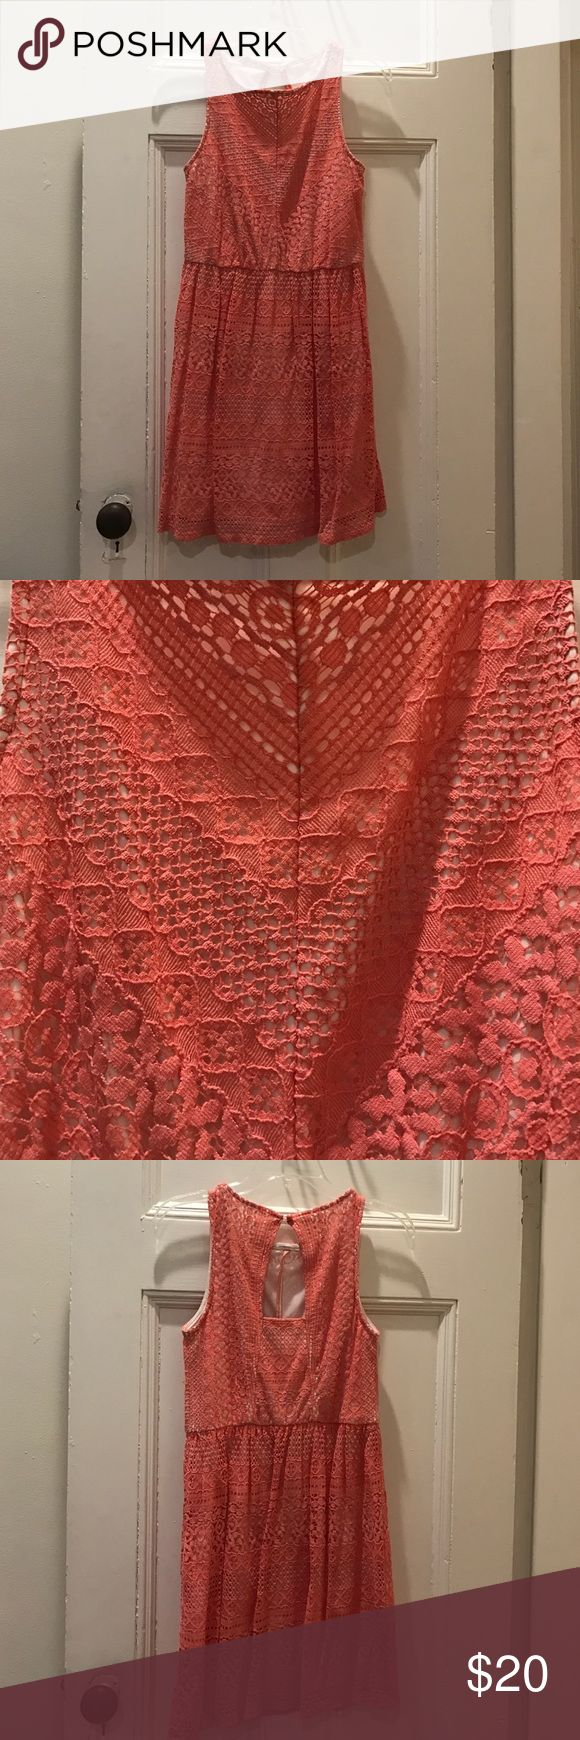 Cute Coral Lace Summer Dress Cute Coral Lace Summer Dress. Worn once! Ruby Rox Dresses